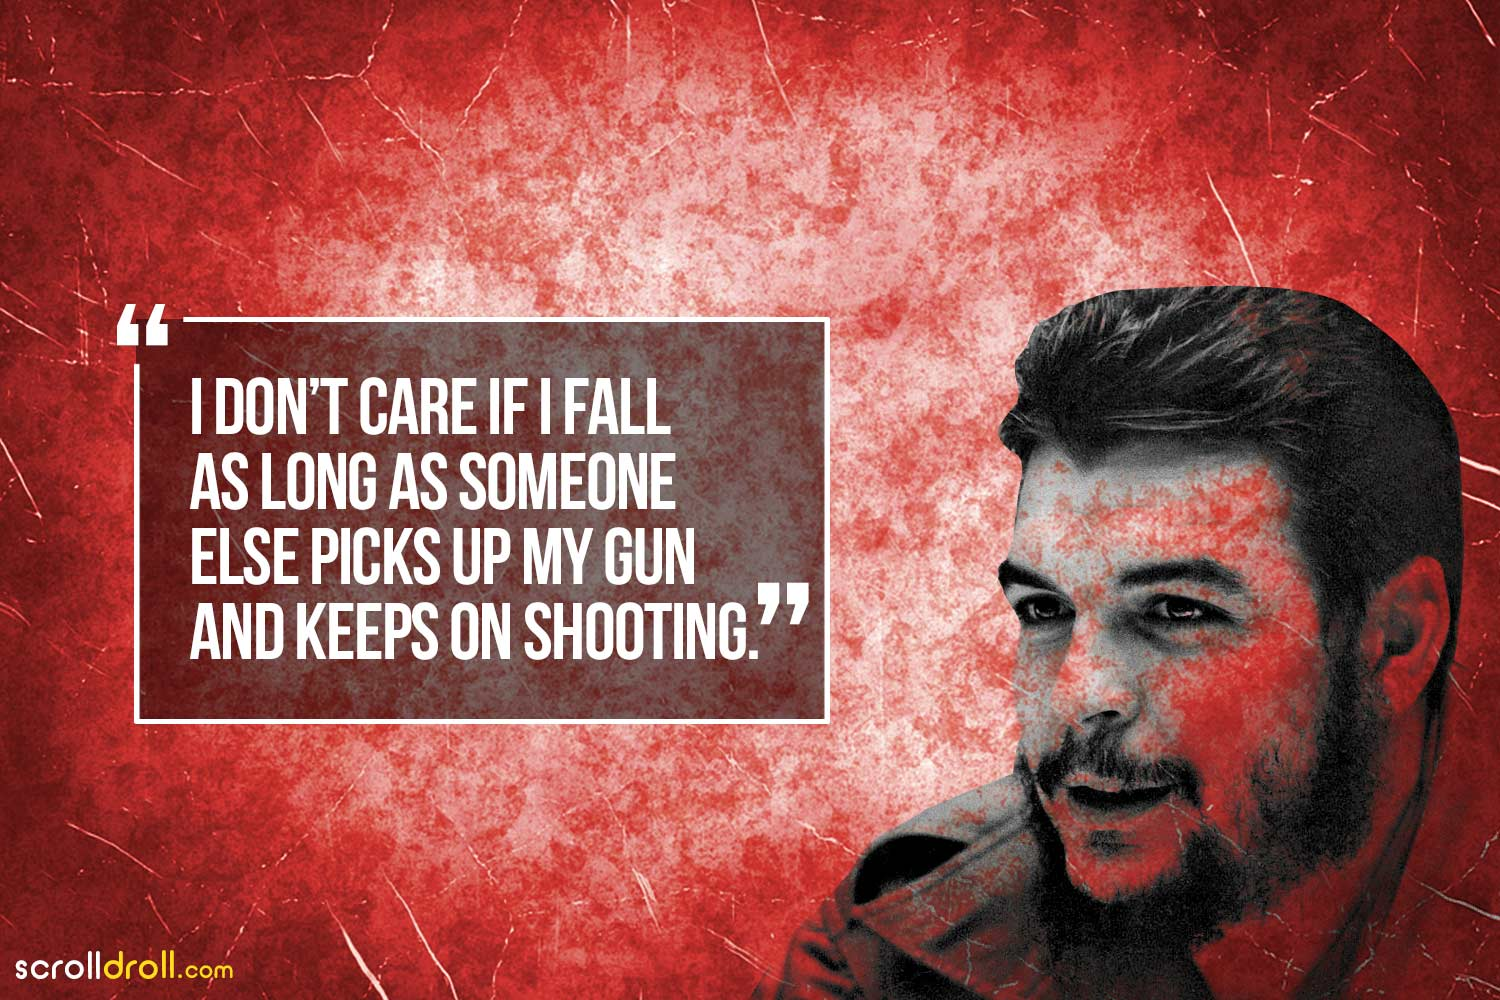 I don't care if I fall as long as someone else picks up my gun and keeps on shooting-Che Guevara